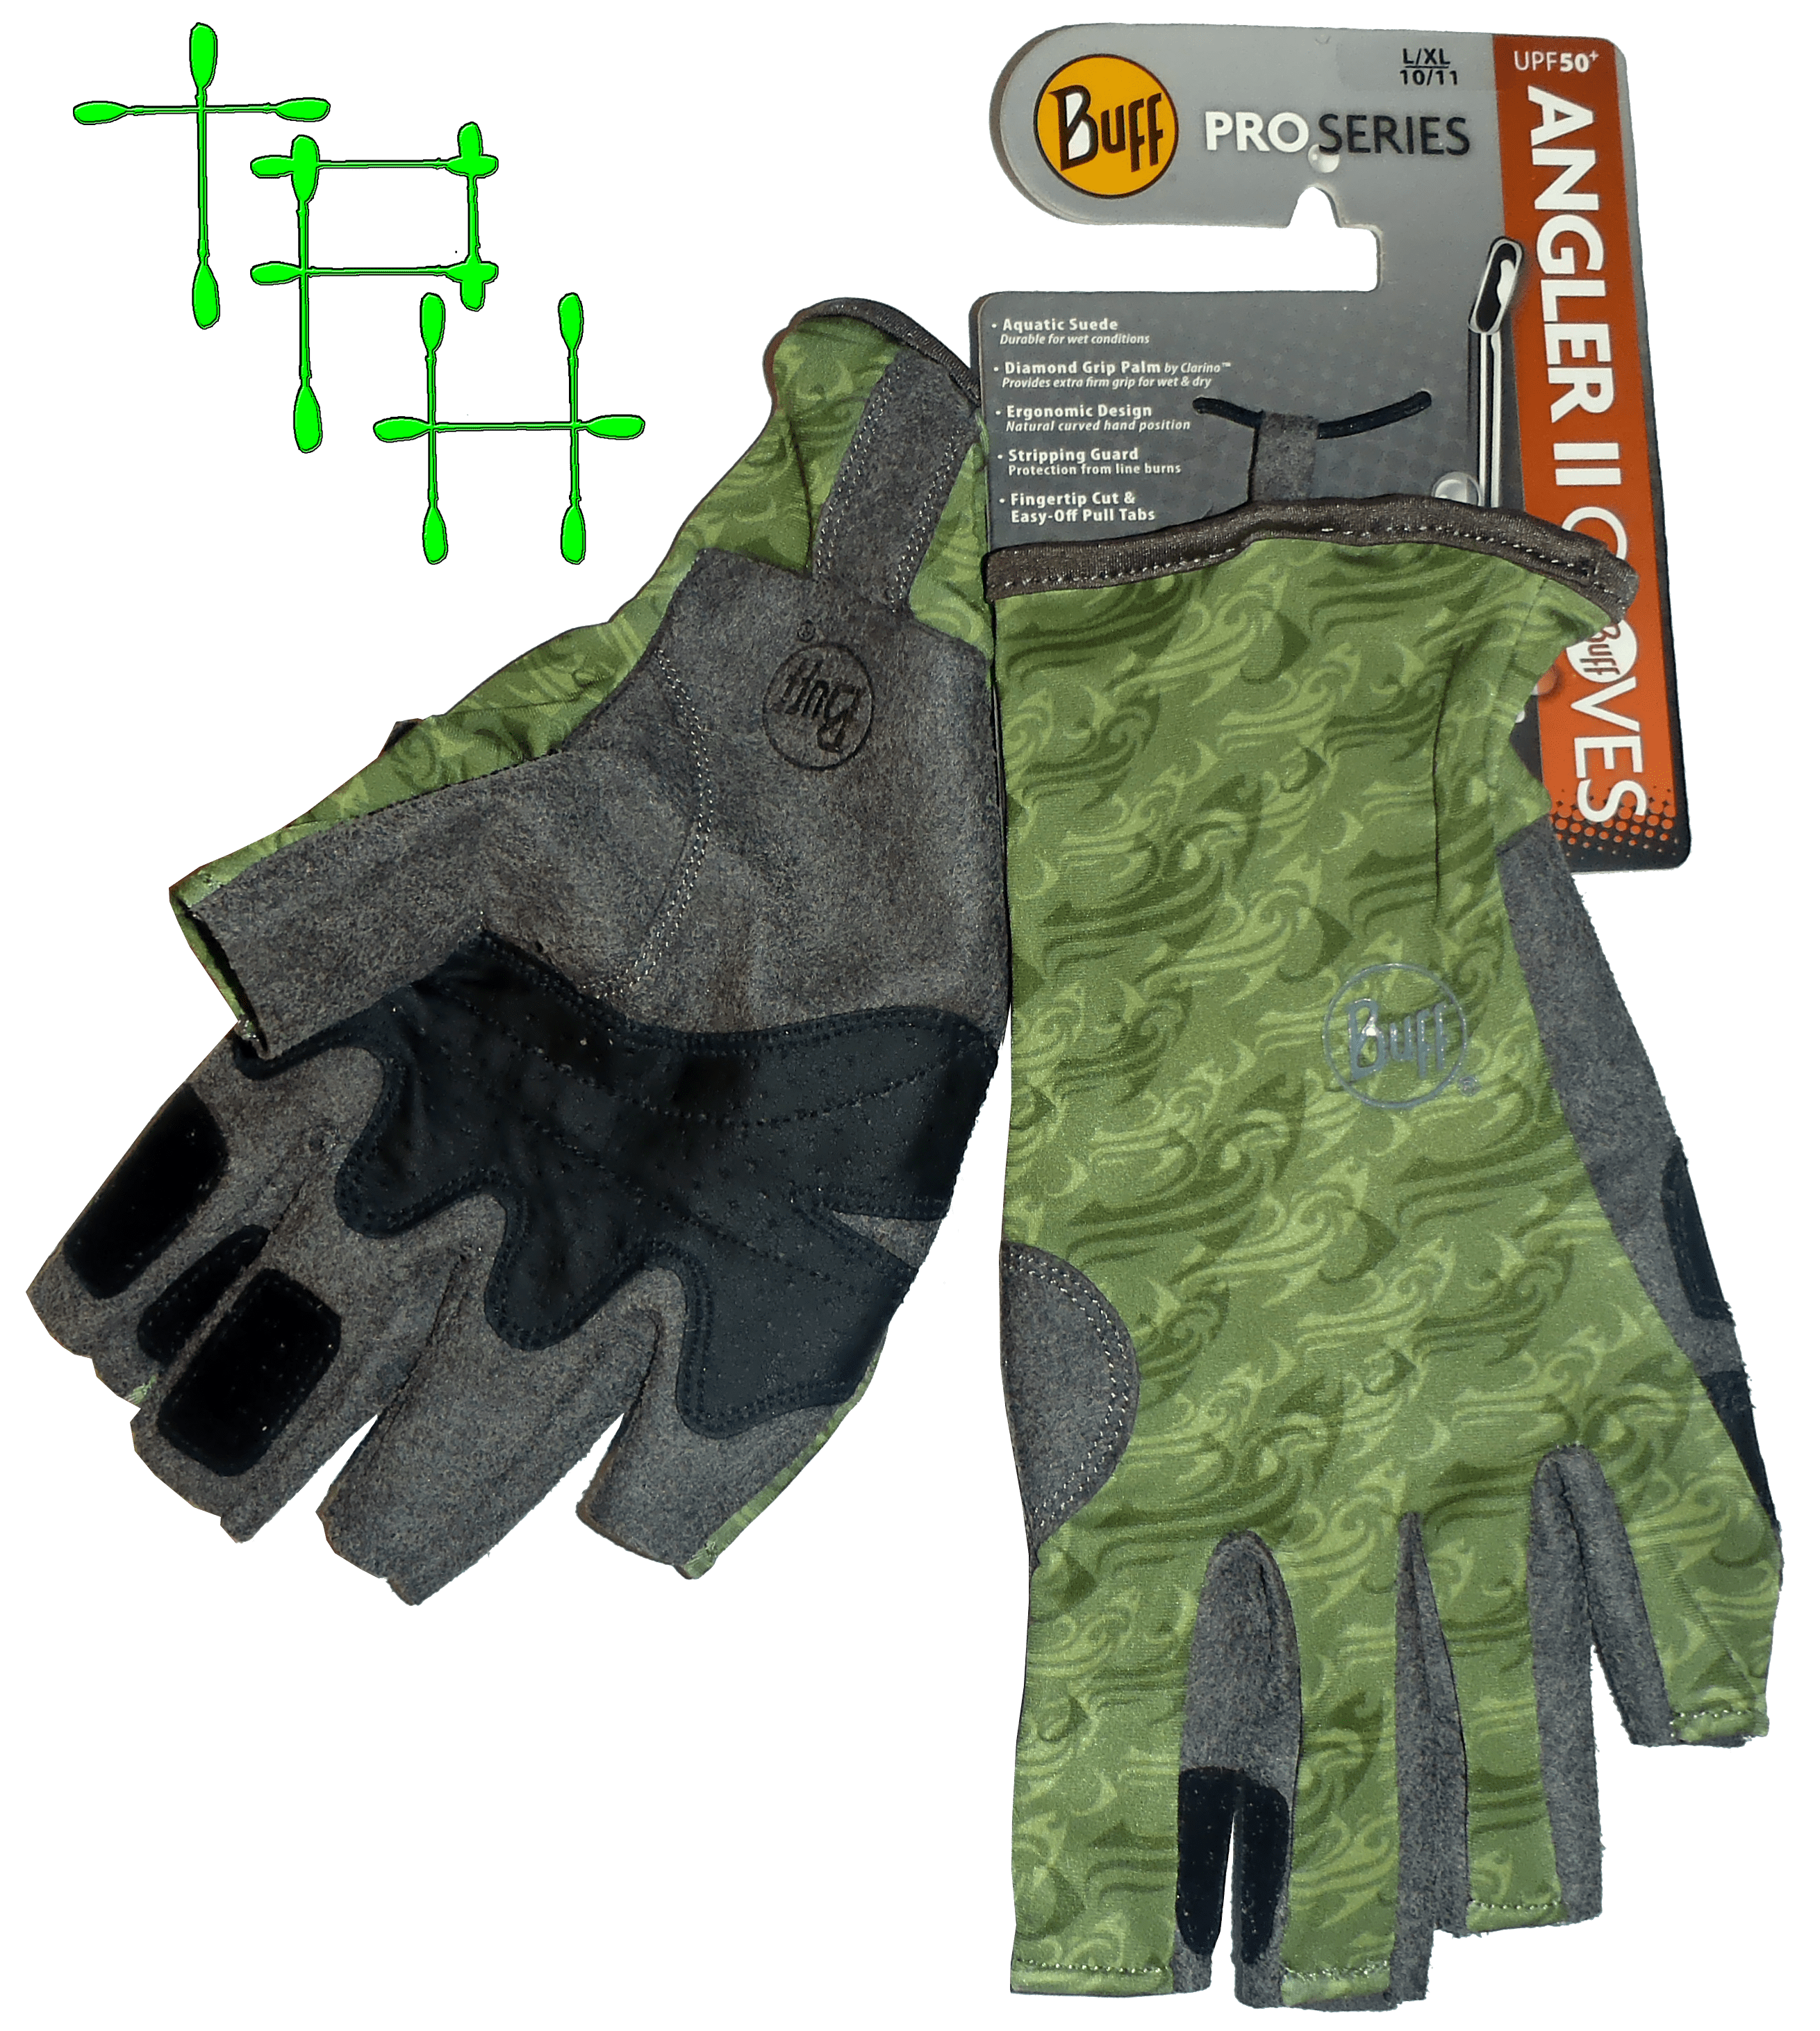 Review buff pro series angler gloves the plastic hull for Buff fishing gloves